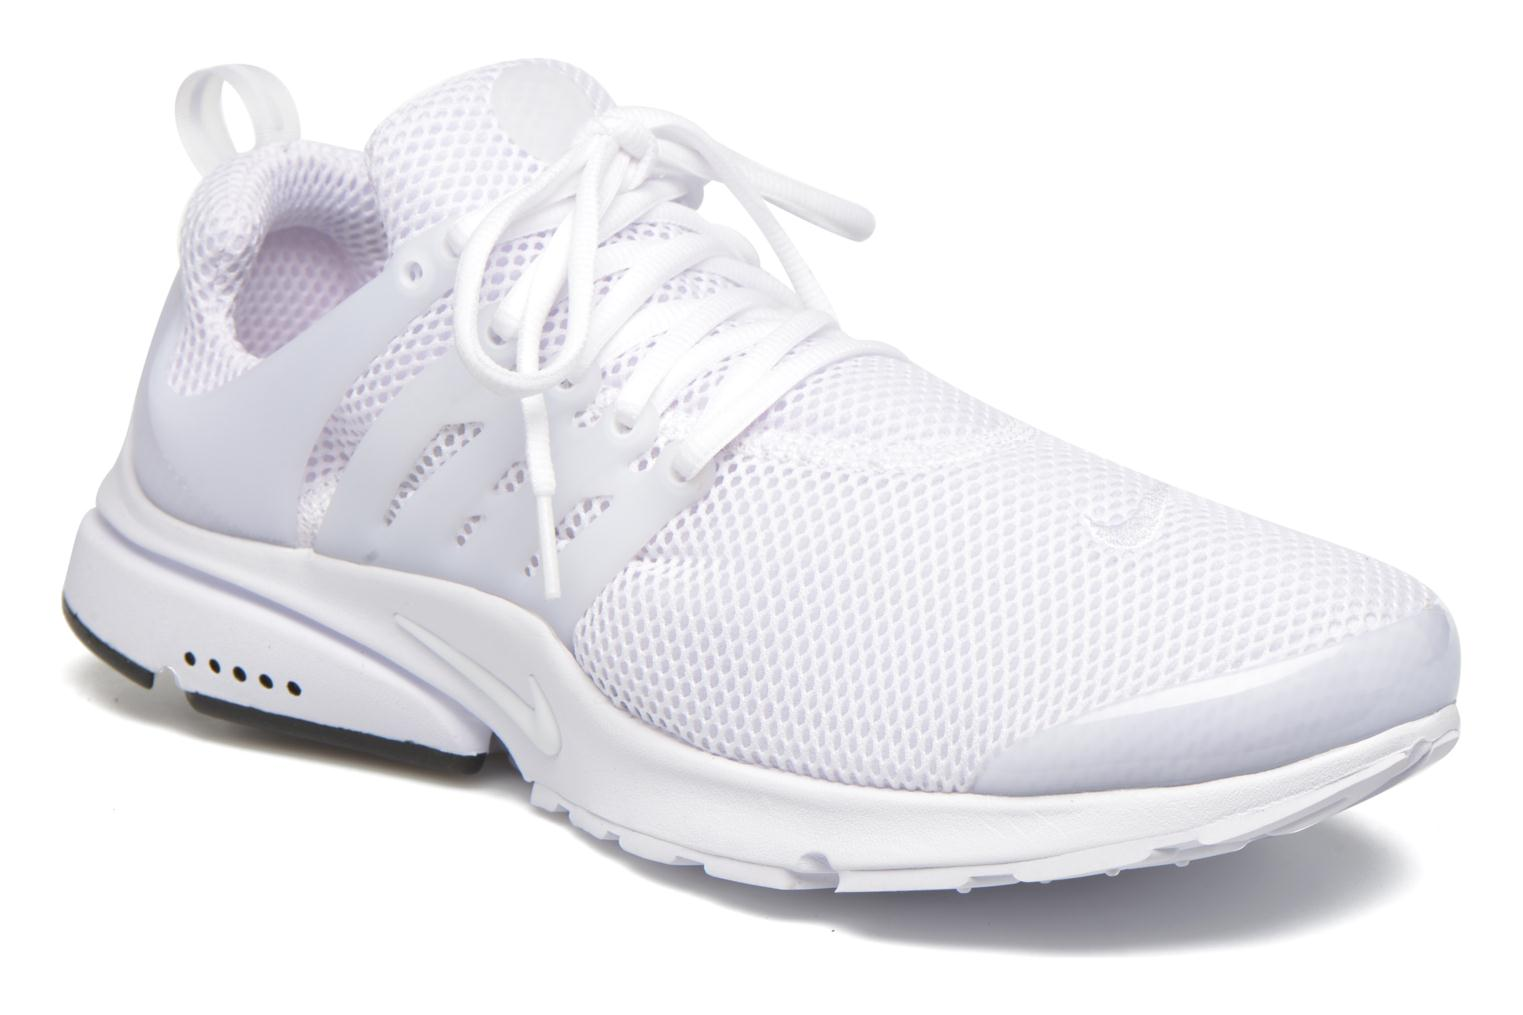 newest 56f32 57bdd milk blog nike air presto breathe white QS